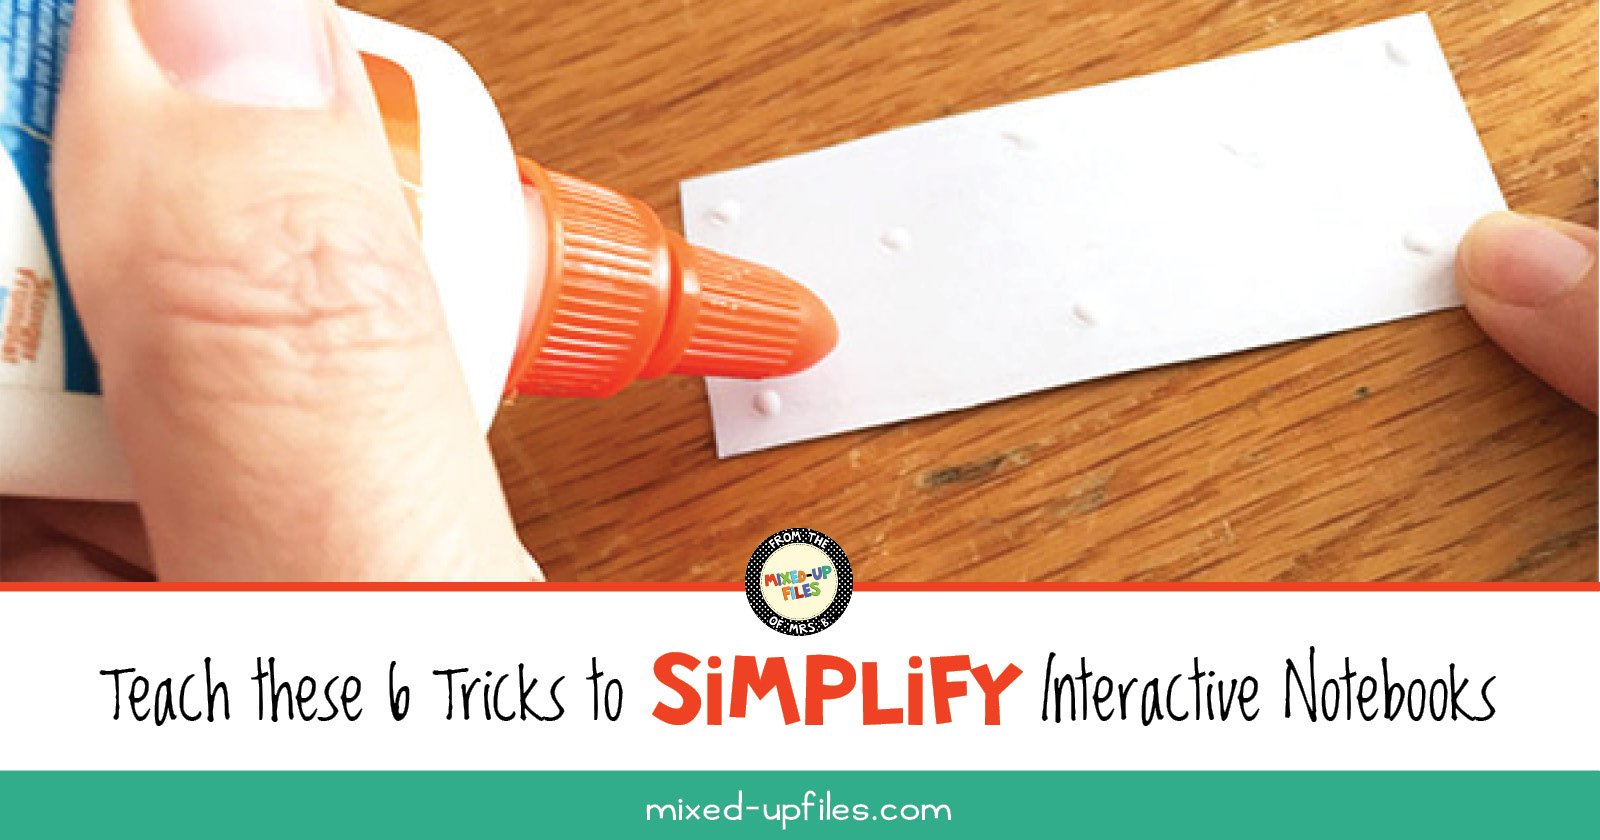 Teach These 6 Tricks to Simplify Interactive Notebooks